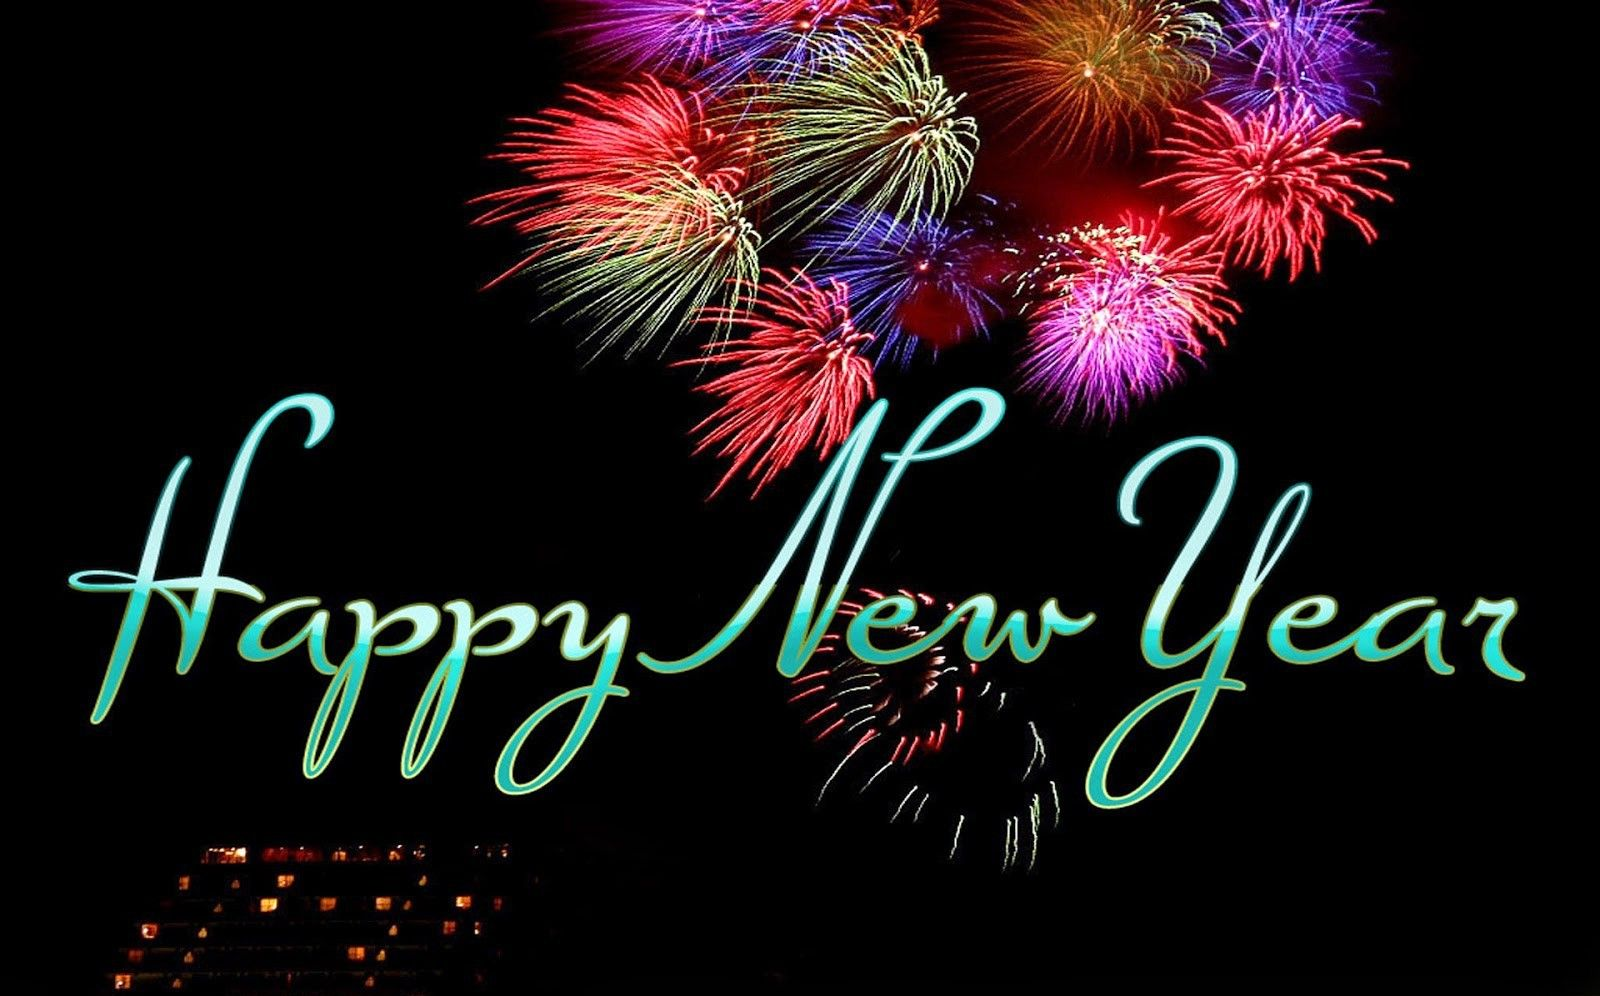 Download Happy New Year Live Wallpaper For Pc Windows And Mac Apk Happy New Year Message Happy New Year Images Happy New Year Wallpaper